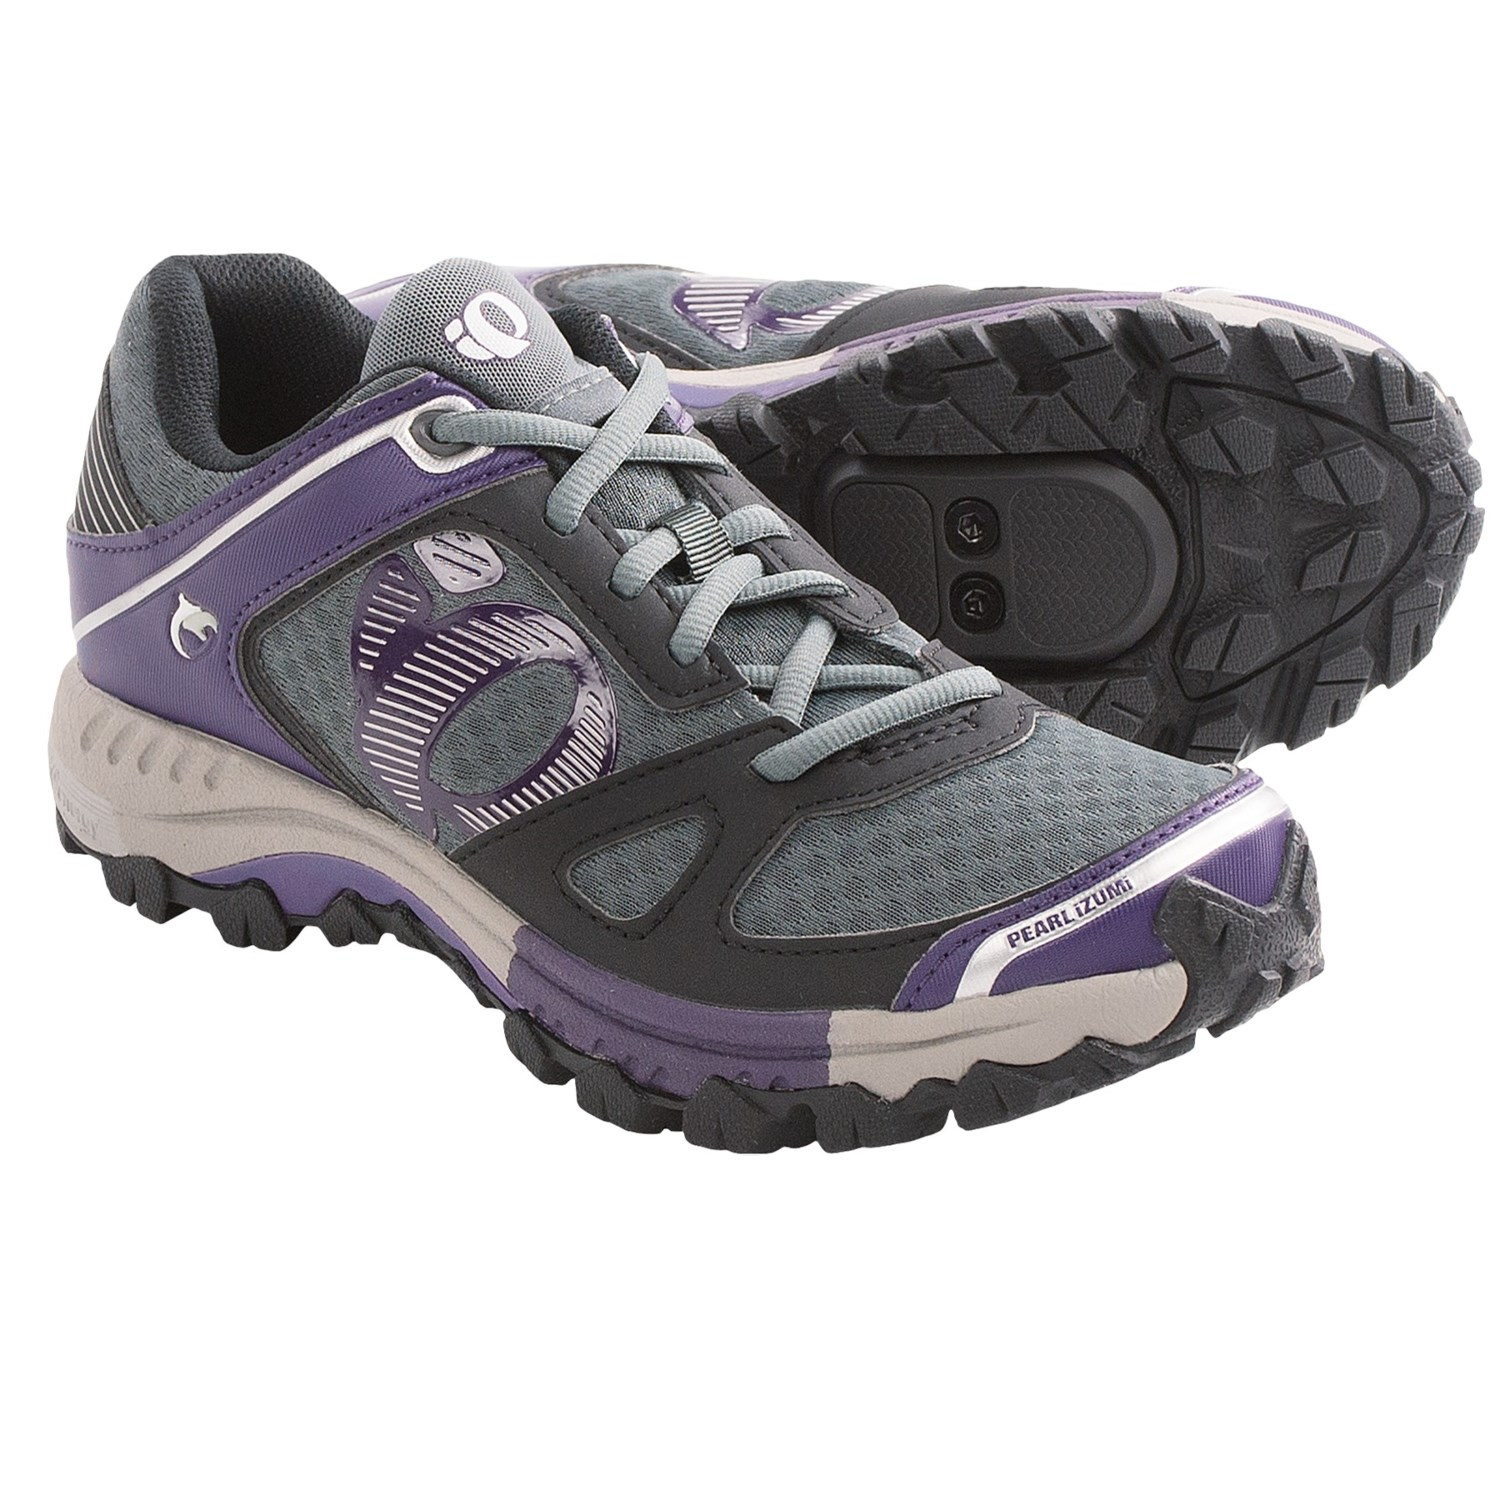 Pearl Izumi X-Alp Seek V Mountain Bike Shoes - SPD (For Women) in